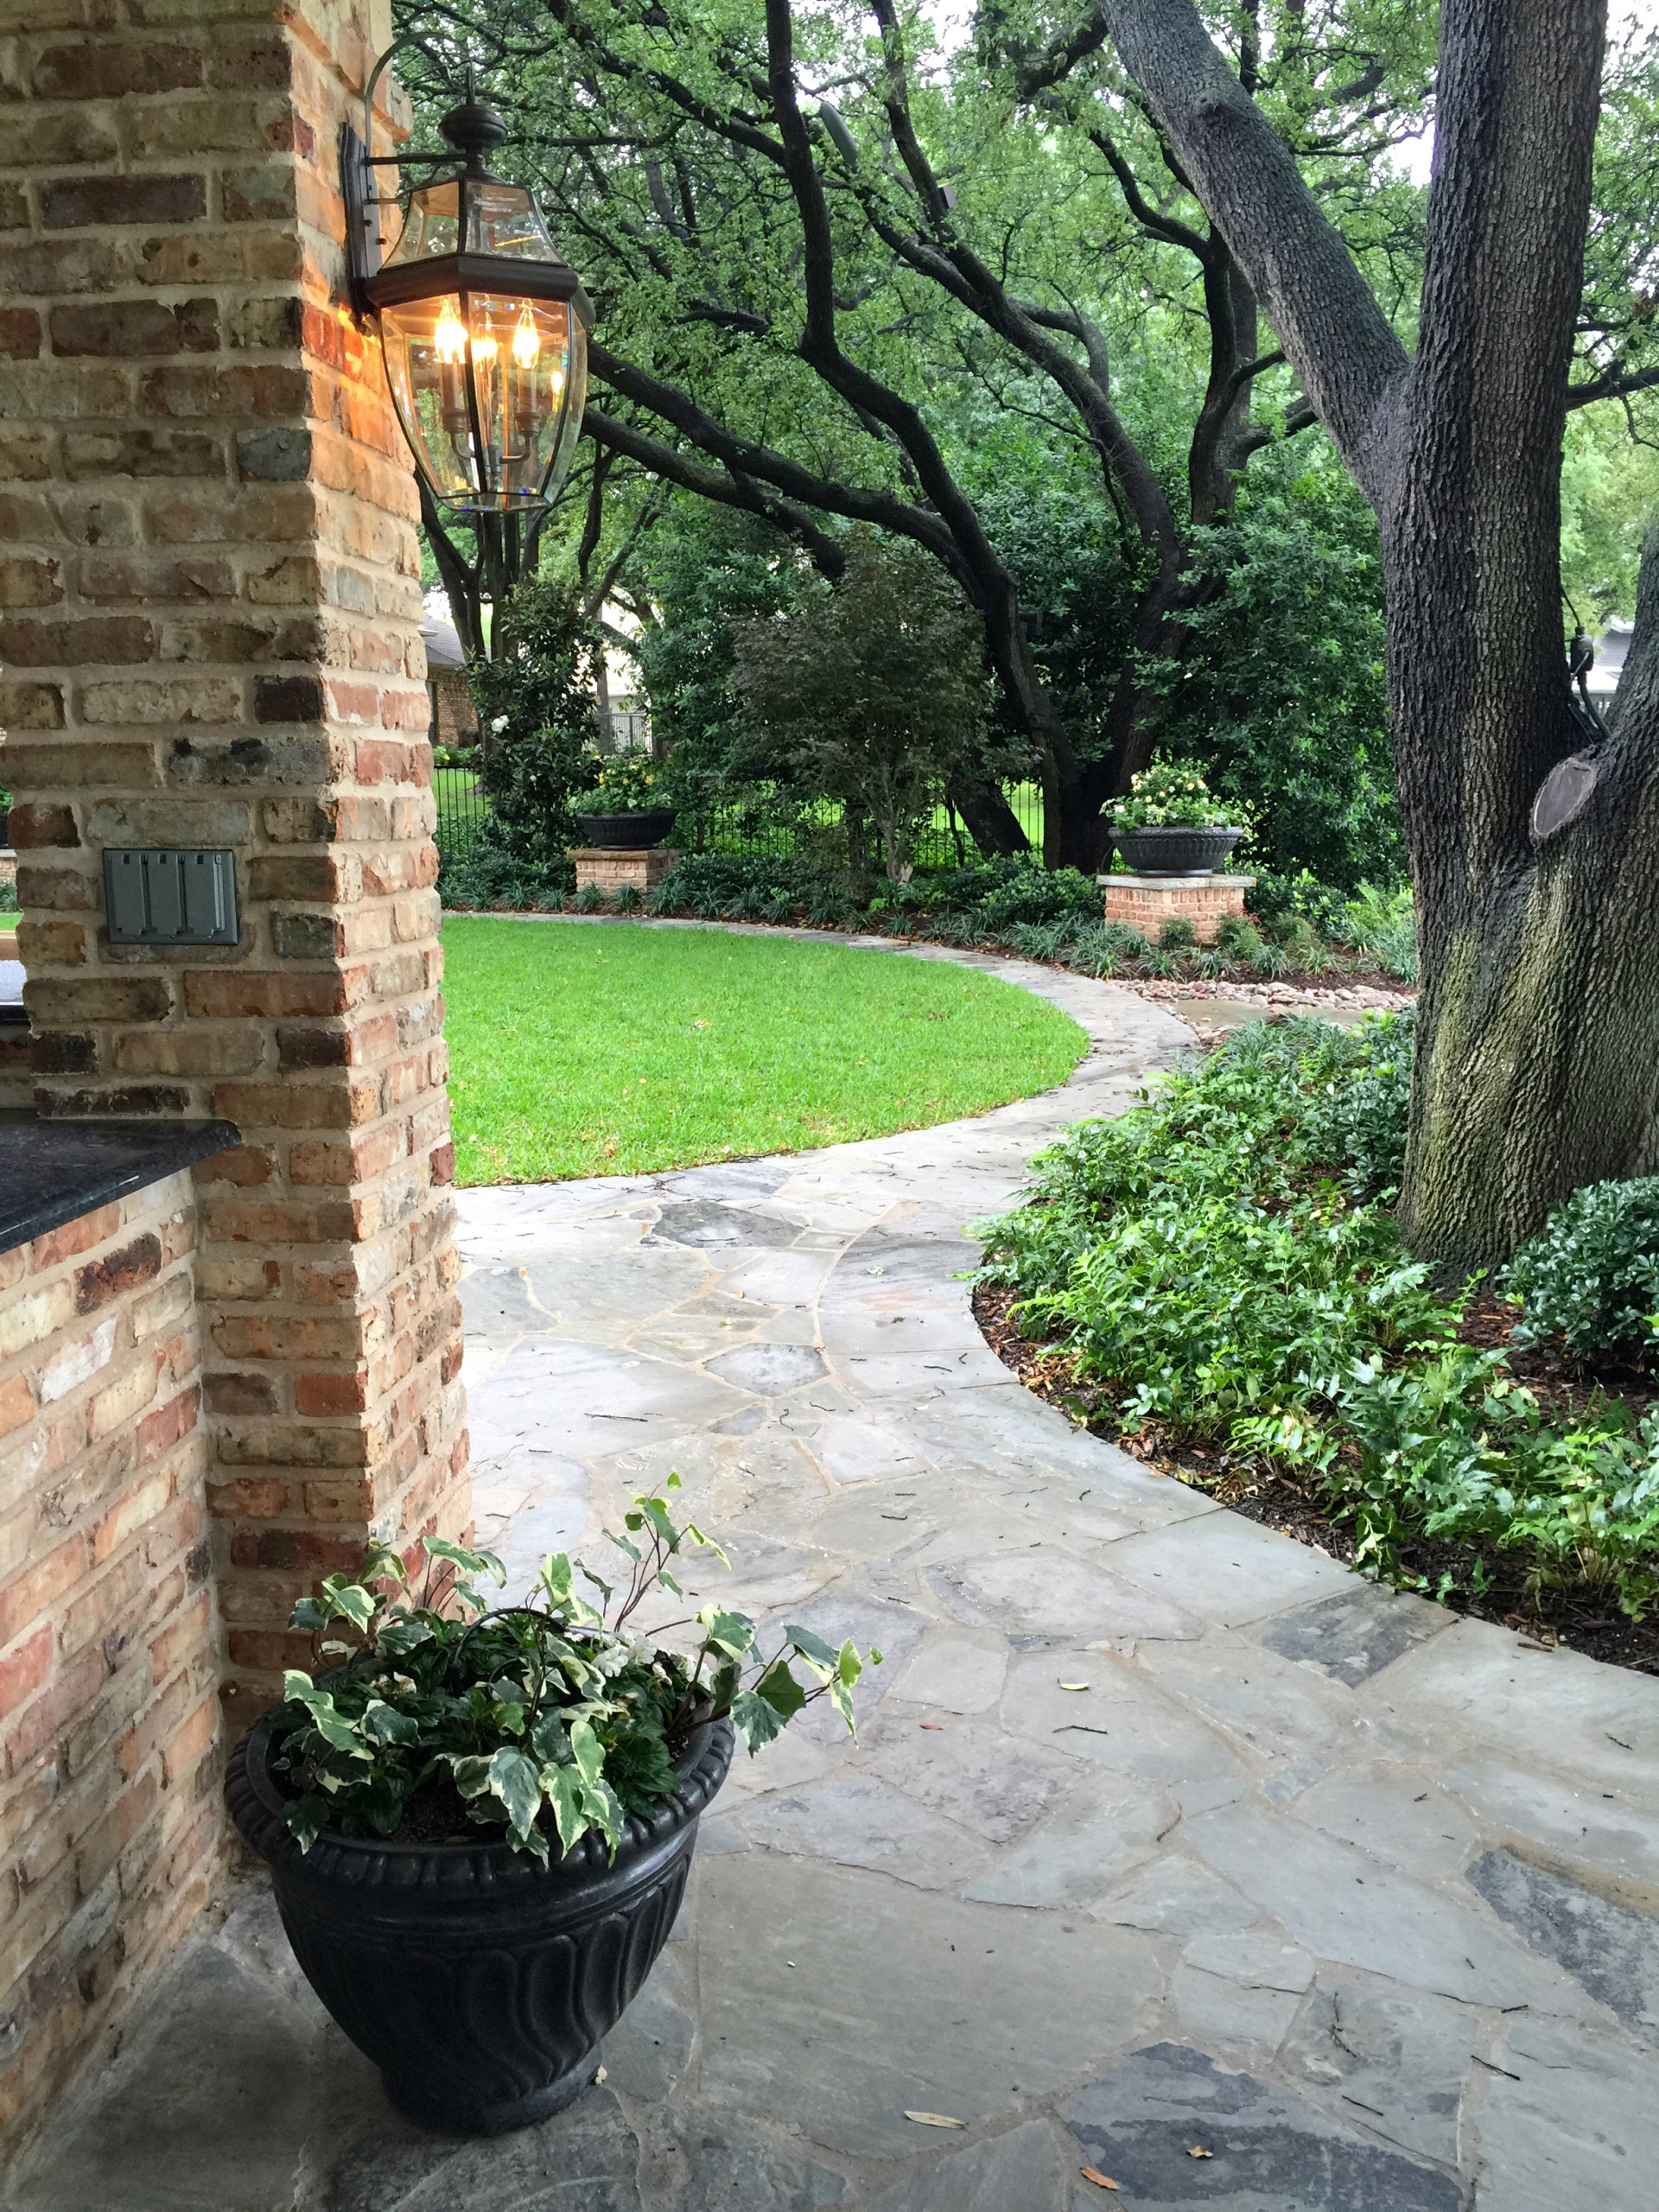 Garden for Her / Outdoor Man Cave for him